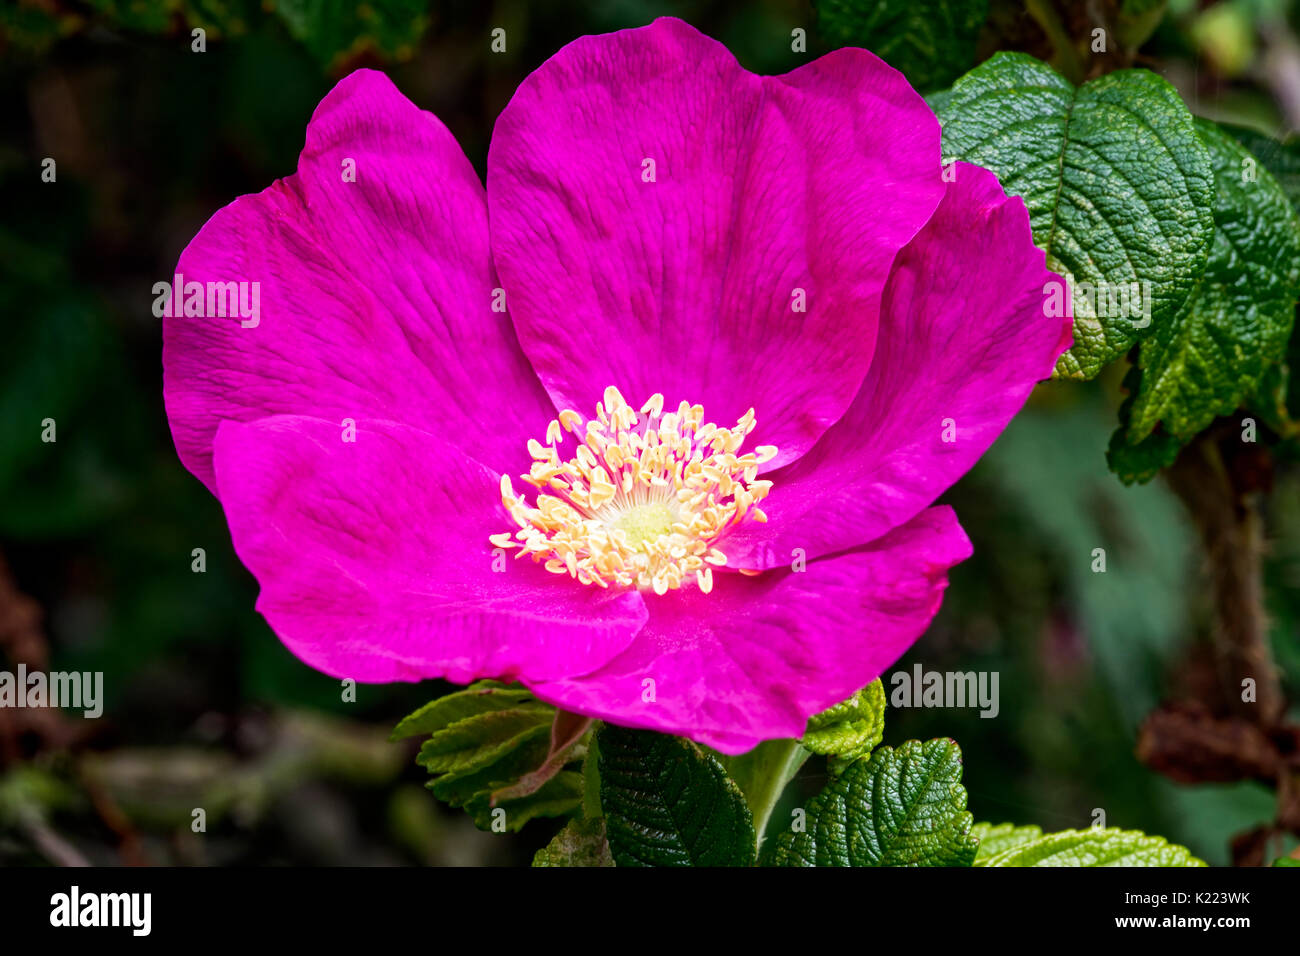 Dog Rose Beauty Flowers Pink Plants Stock Photos Dog Rose Beauty